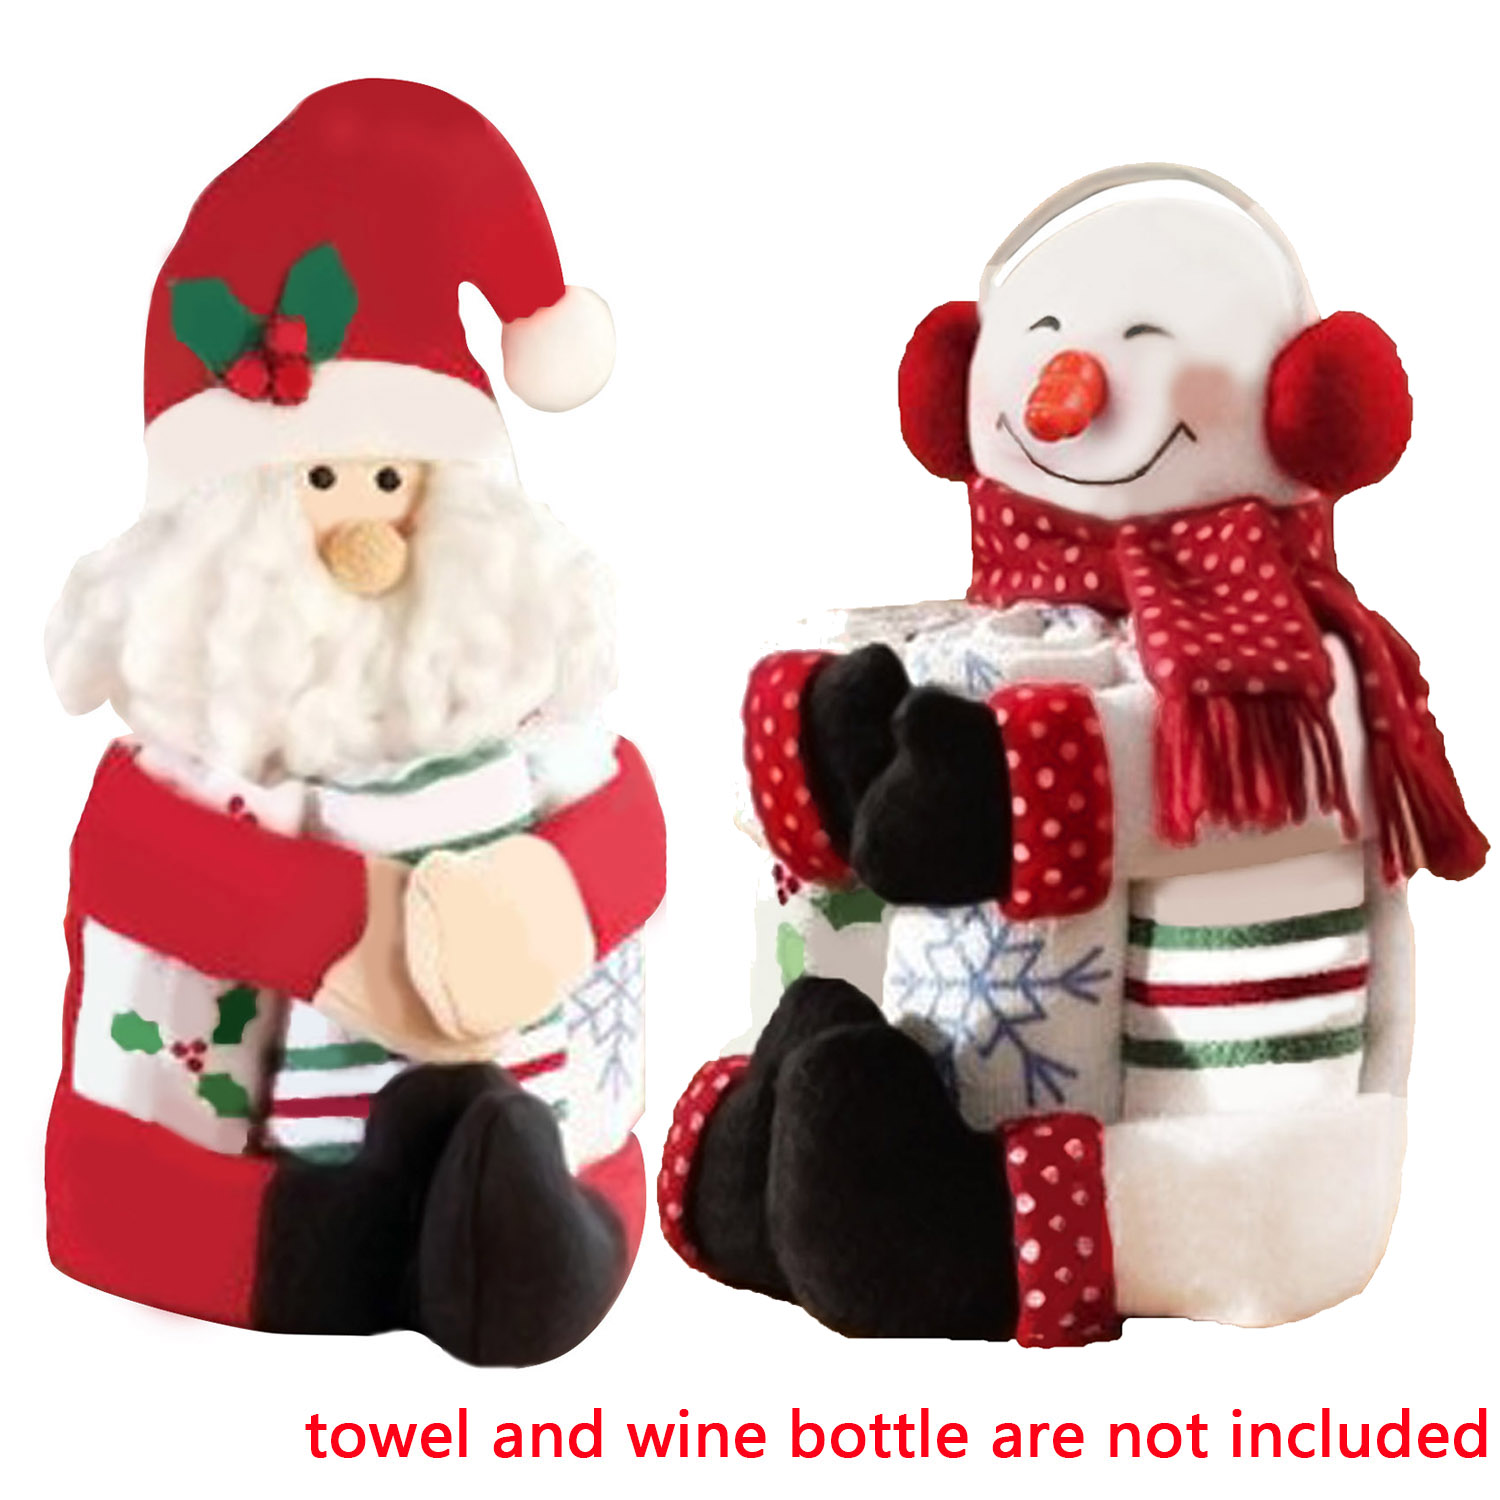 Cute santa claus towel christmas decor - Xmas Christmas Table Party Decoration Supplies Towel Red Wine Bottle Hug Toy Cover China